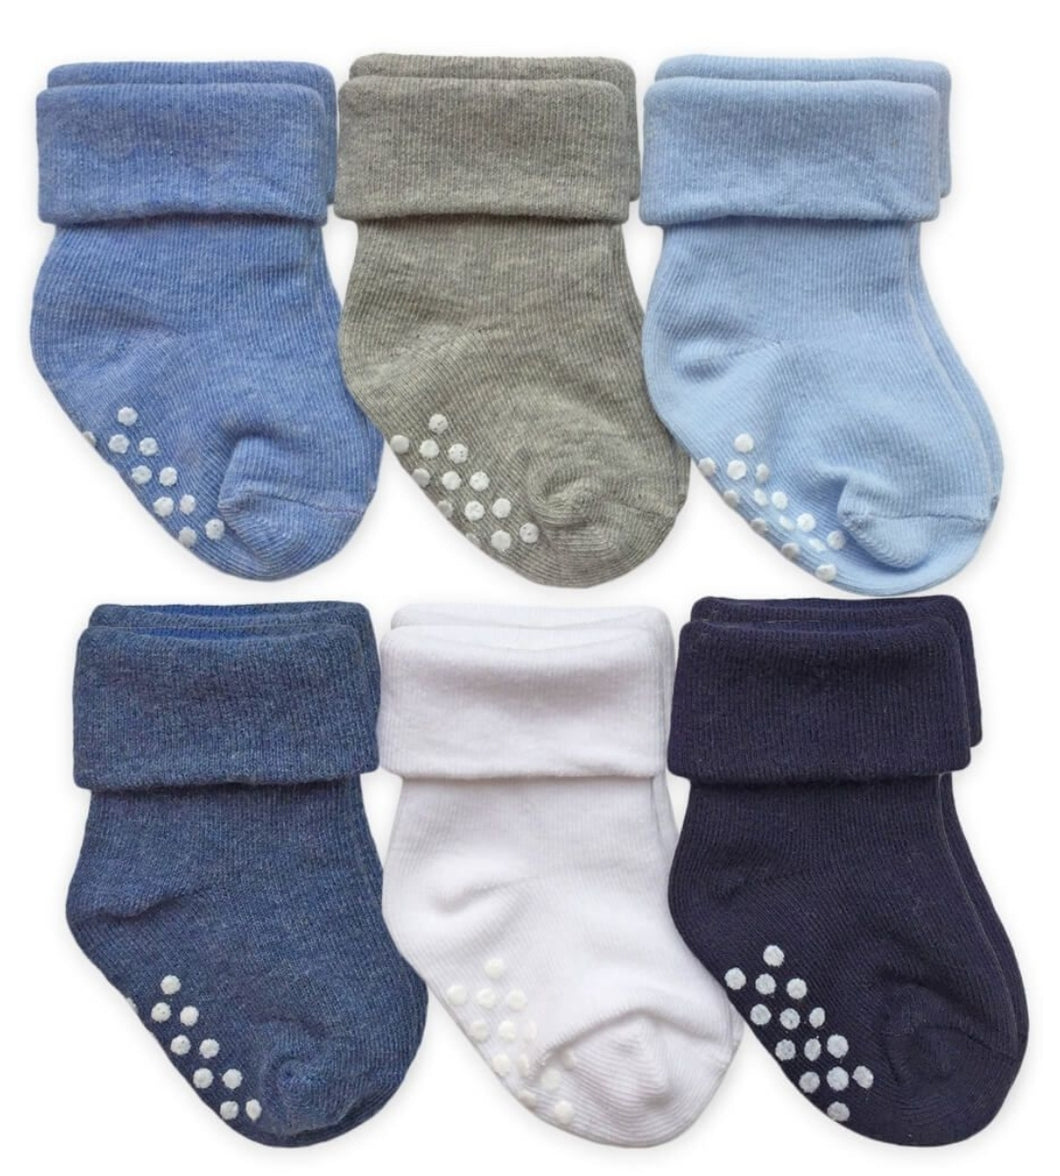 Jefferies Non-Skid Cuff Socks, 6-pair pack